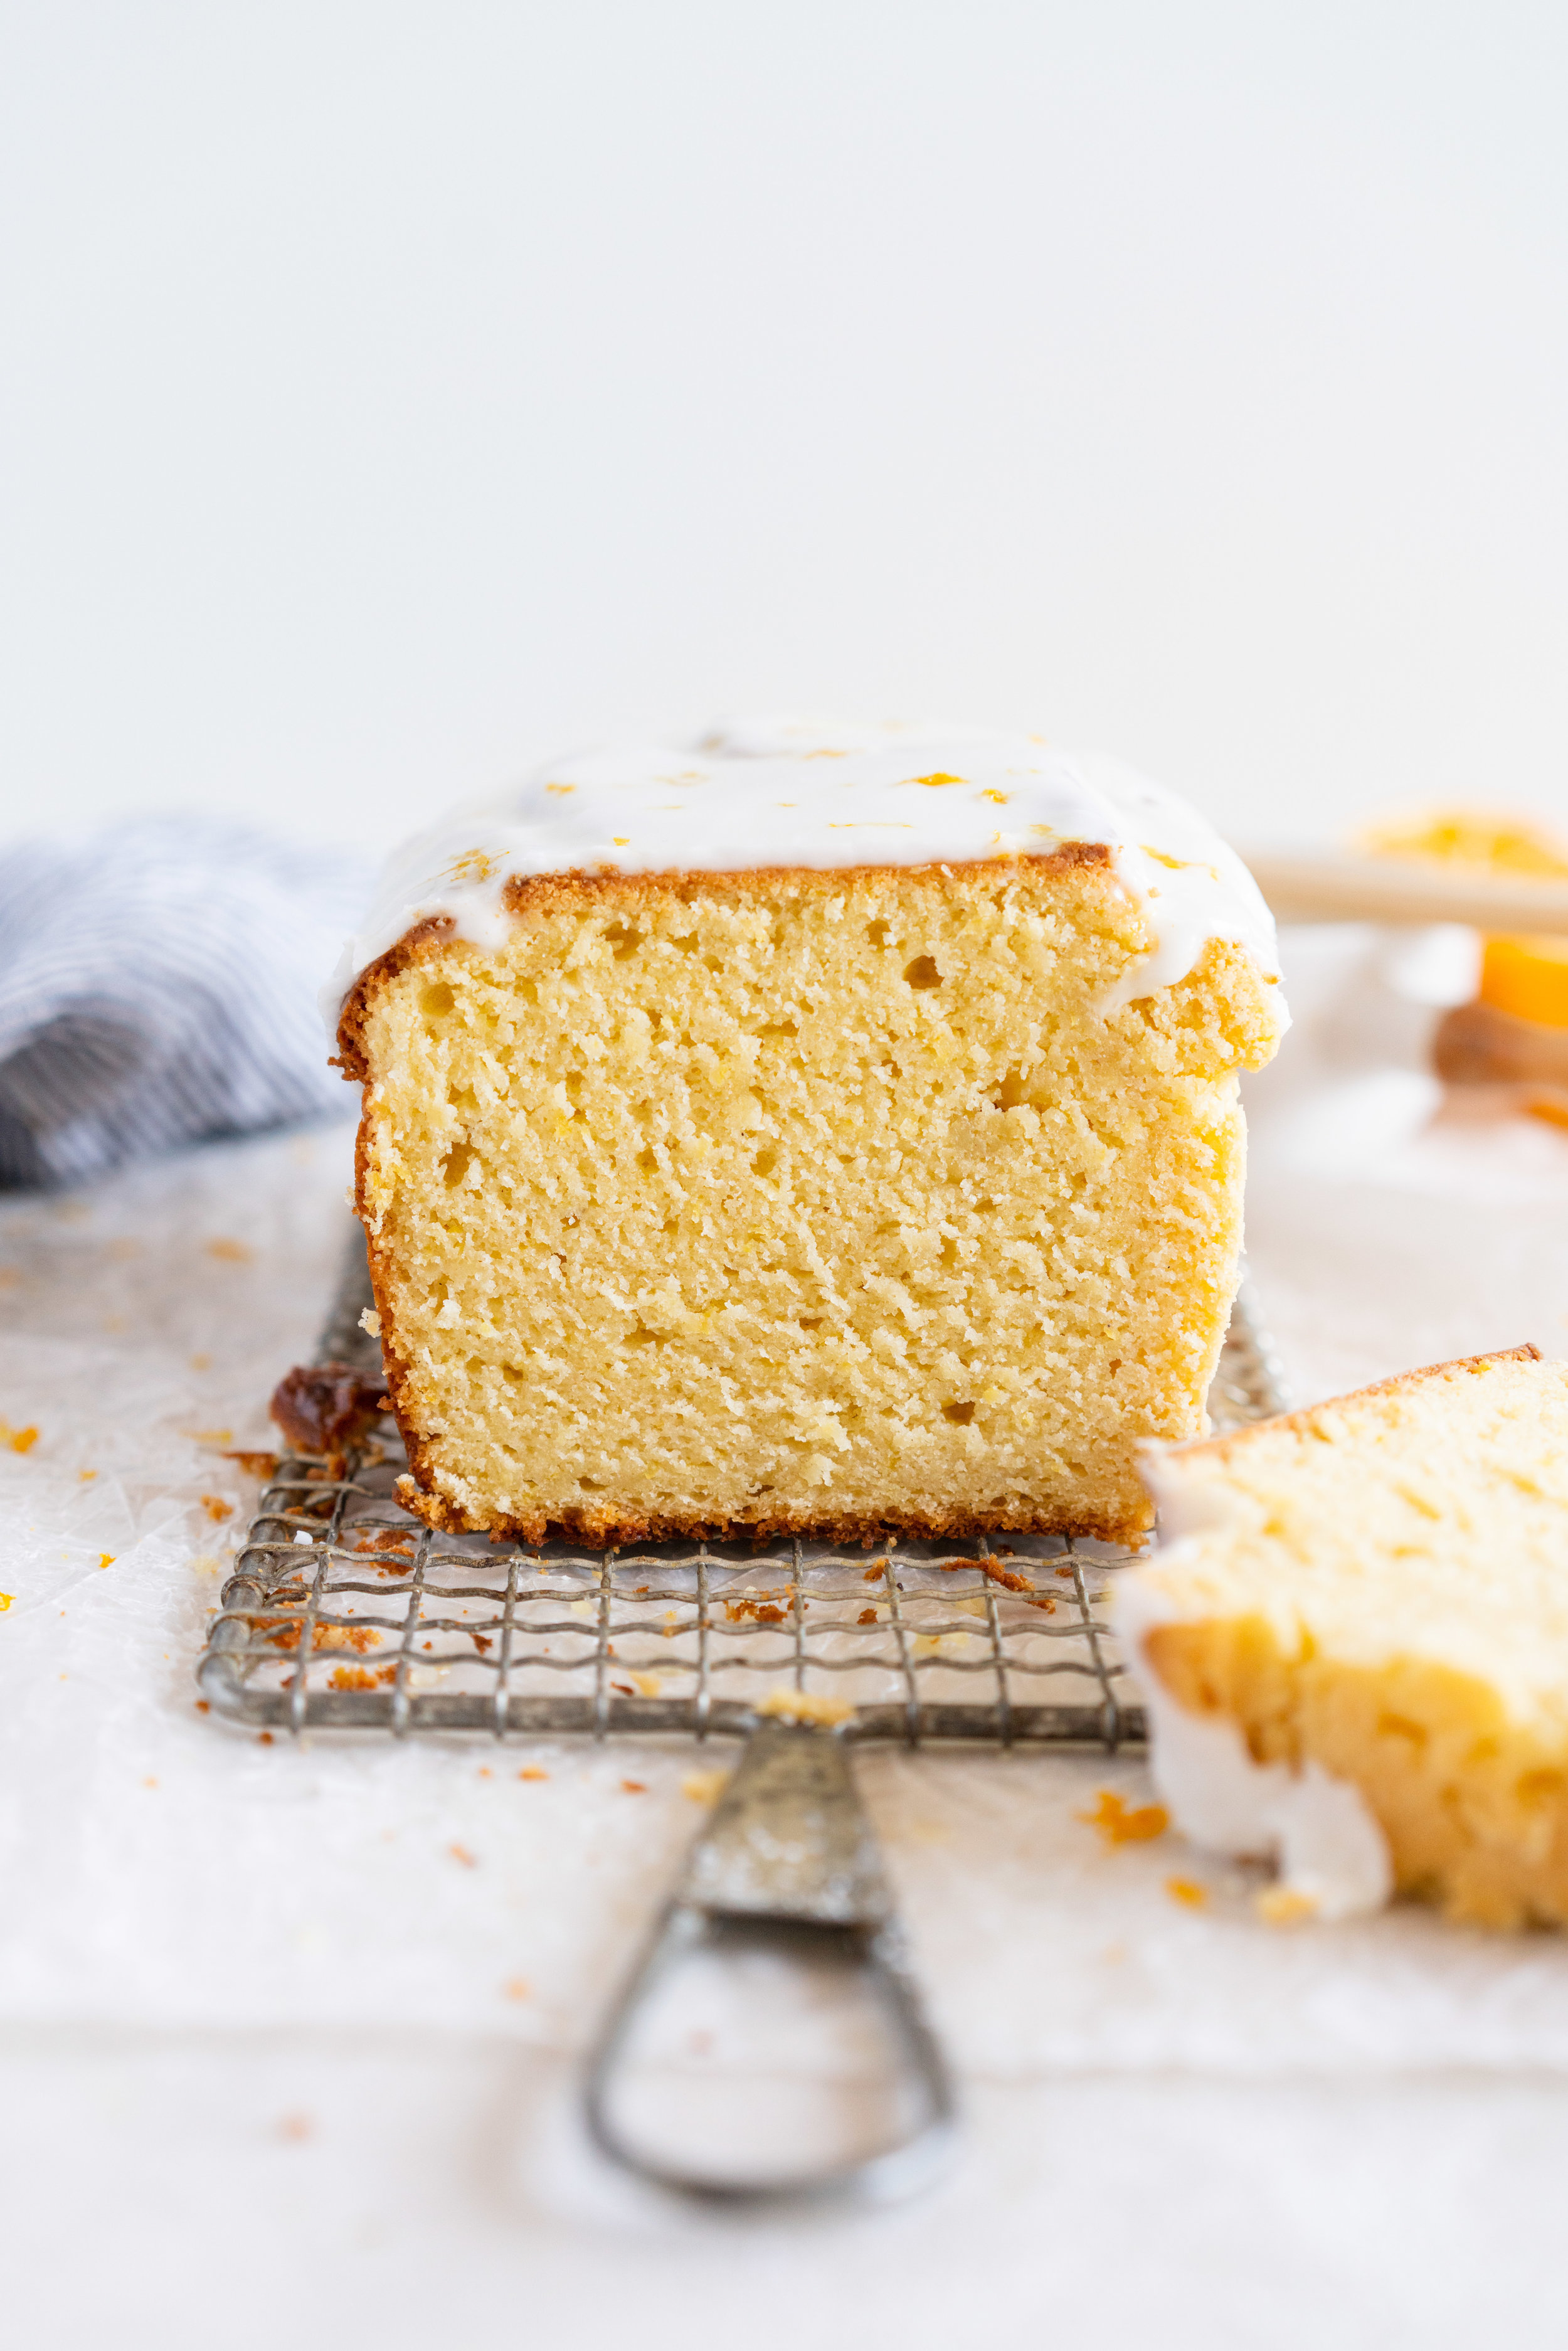 Lemon and Sour Cream Loaf Cake with Lemon Glaze. This stir together loaf cake has a beautifully tender crumb from the sour cream, and is brushed with a lemon syrup and finished with a lemon glaze for a perfect, punchy lemon flavour. This super easy baking project is perfect for a weekend, or for when you need a simple but delicious lemon cake recipe. #lemoncake #loafcake #lemonsourcream